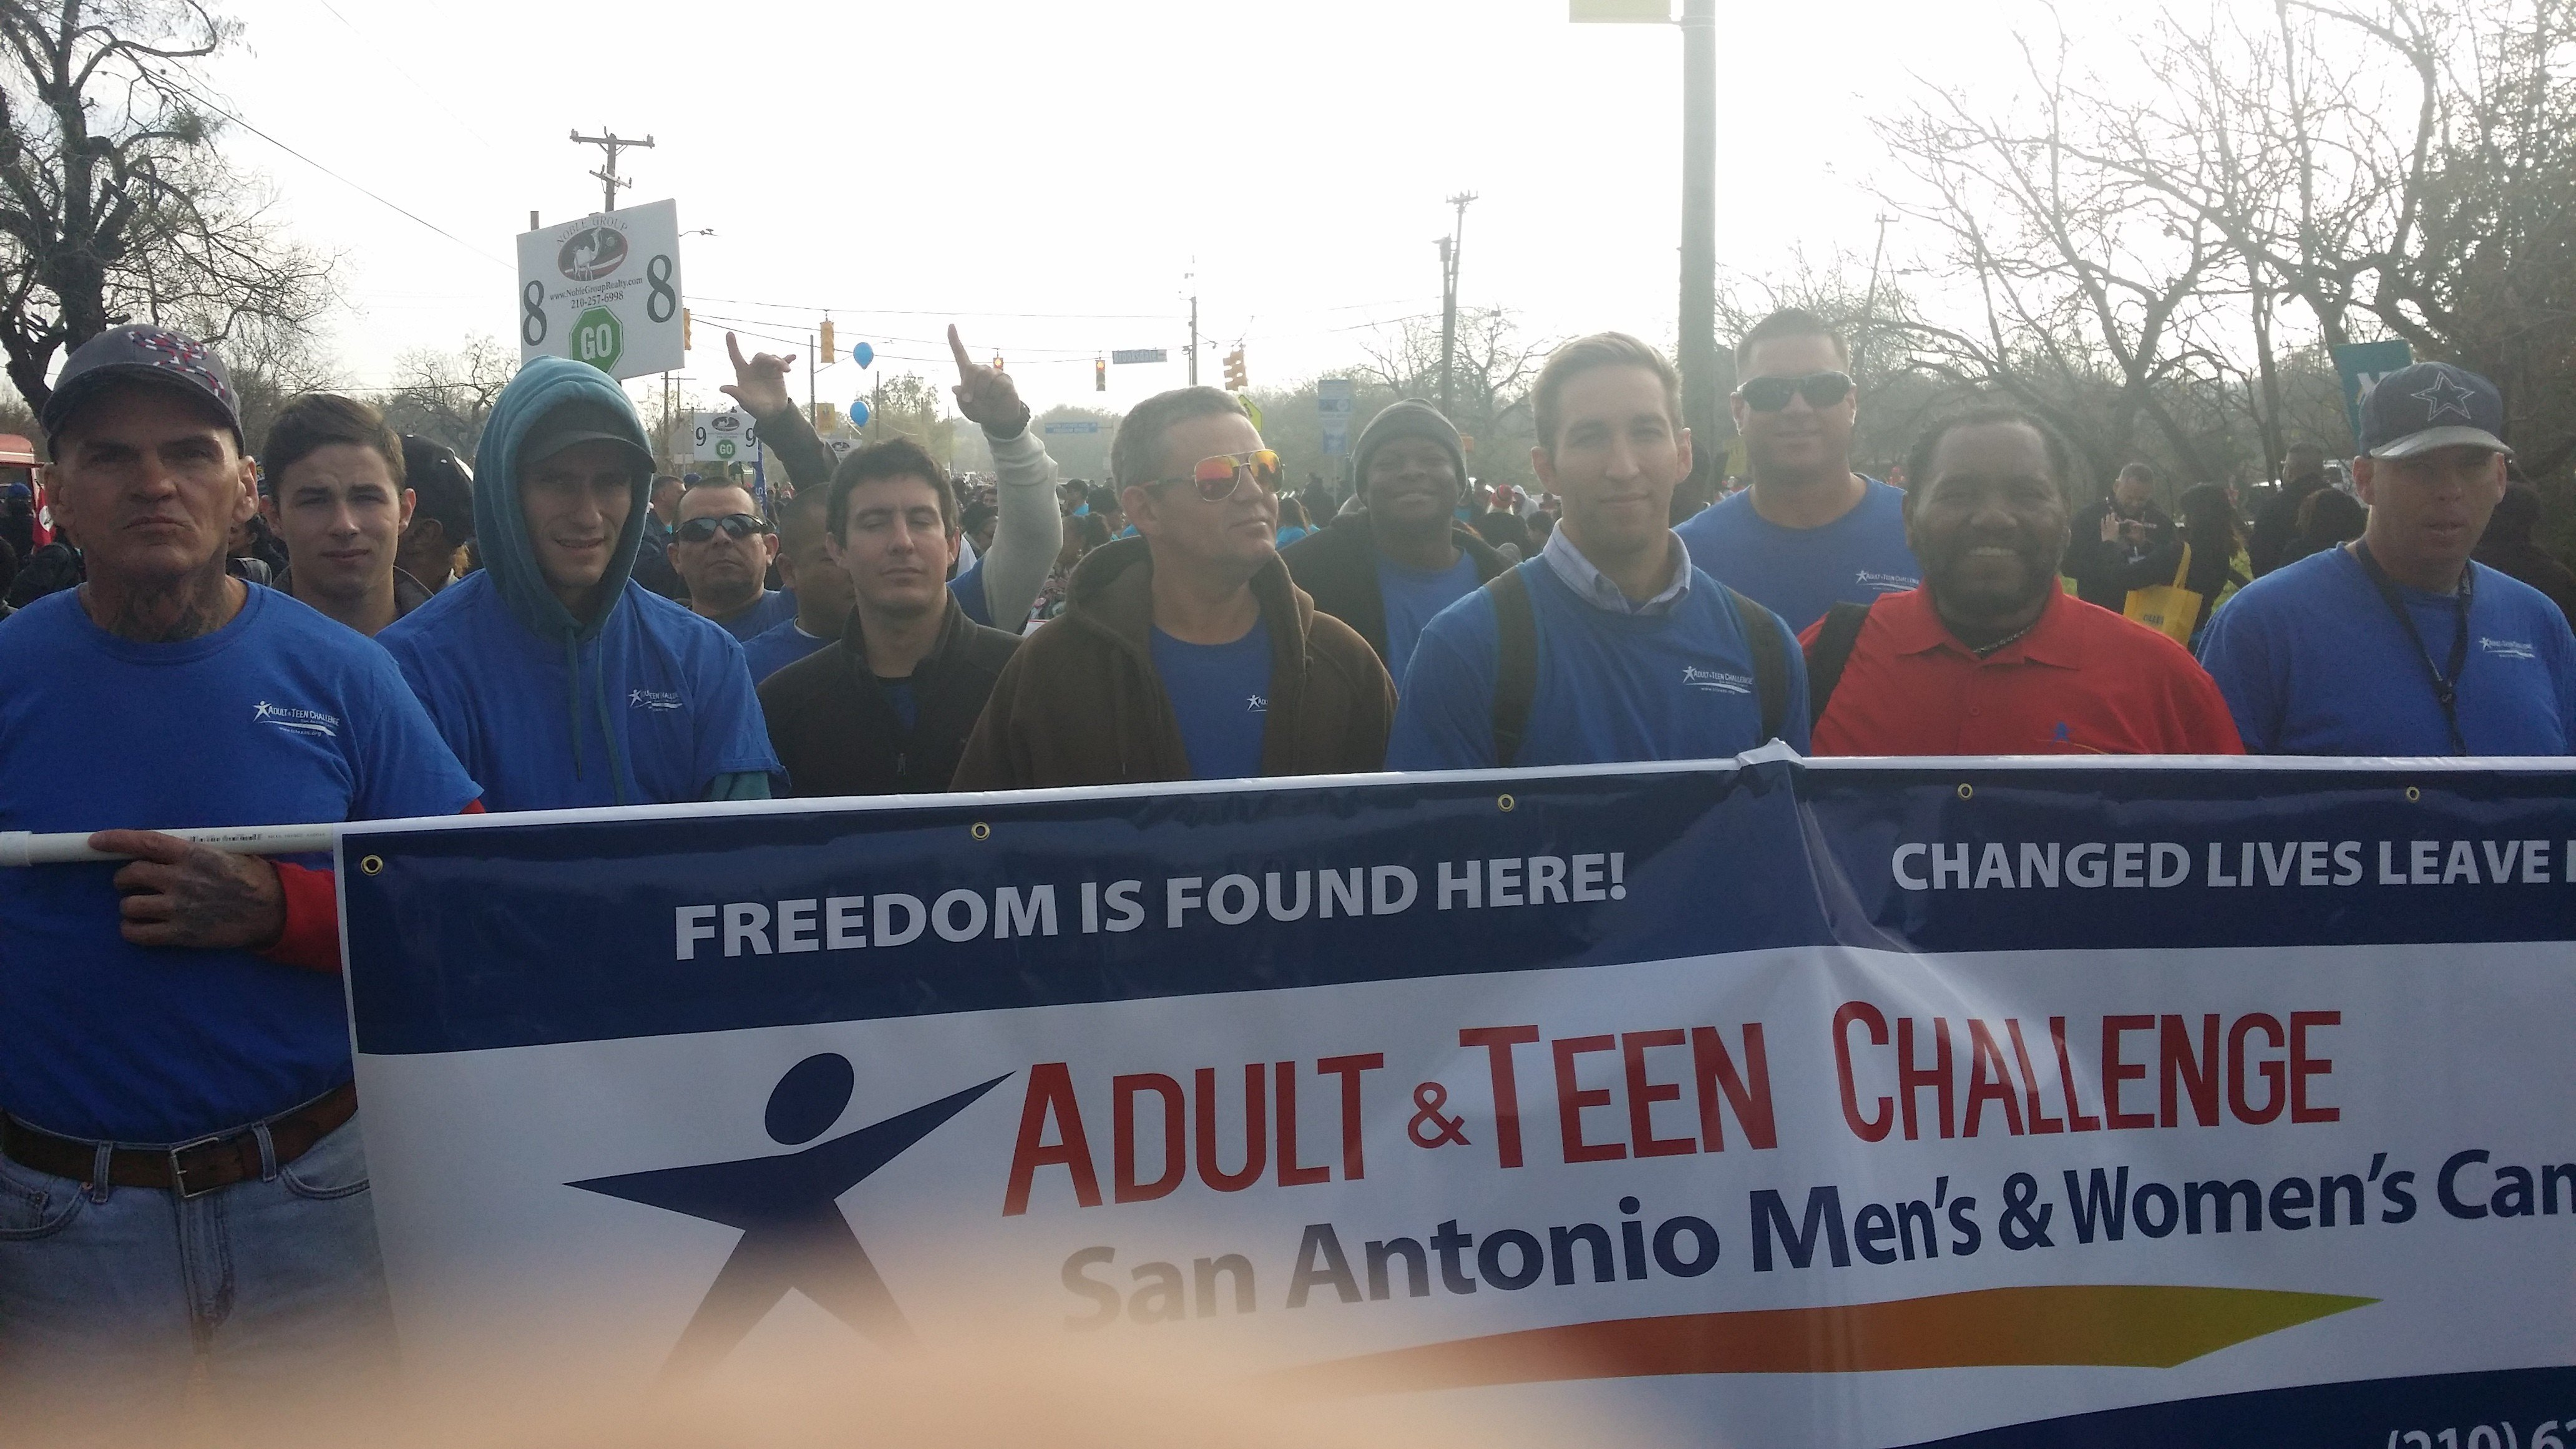 Atcot San Antonio Men March In Annual Martin Luther King